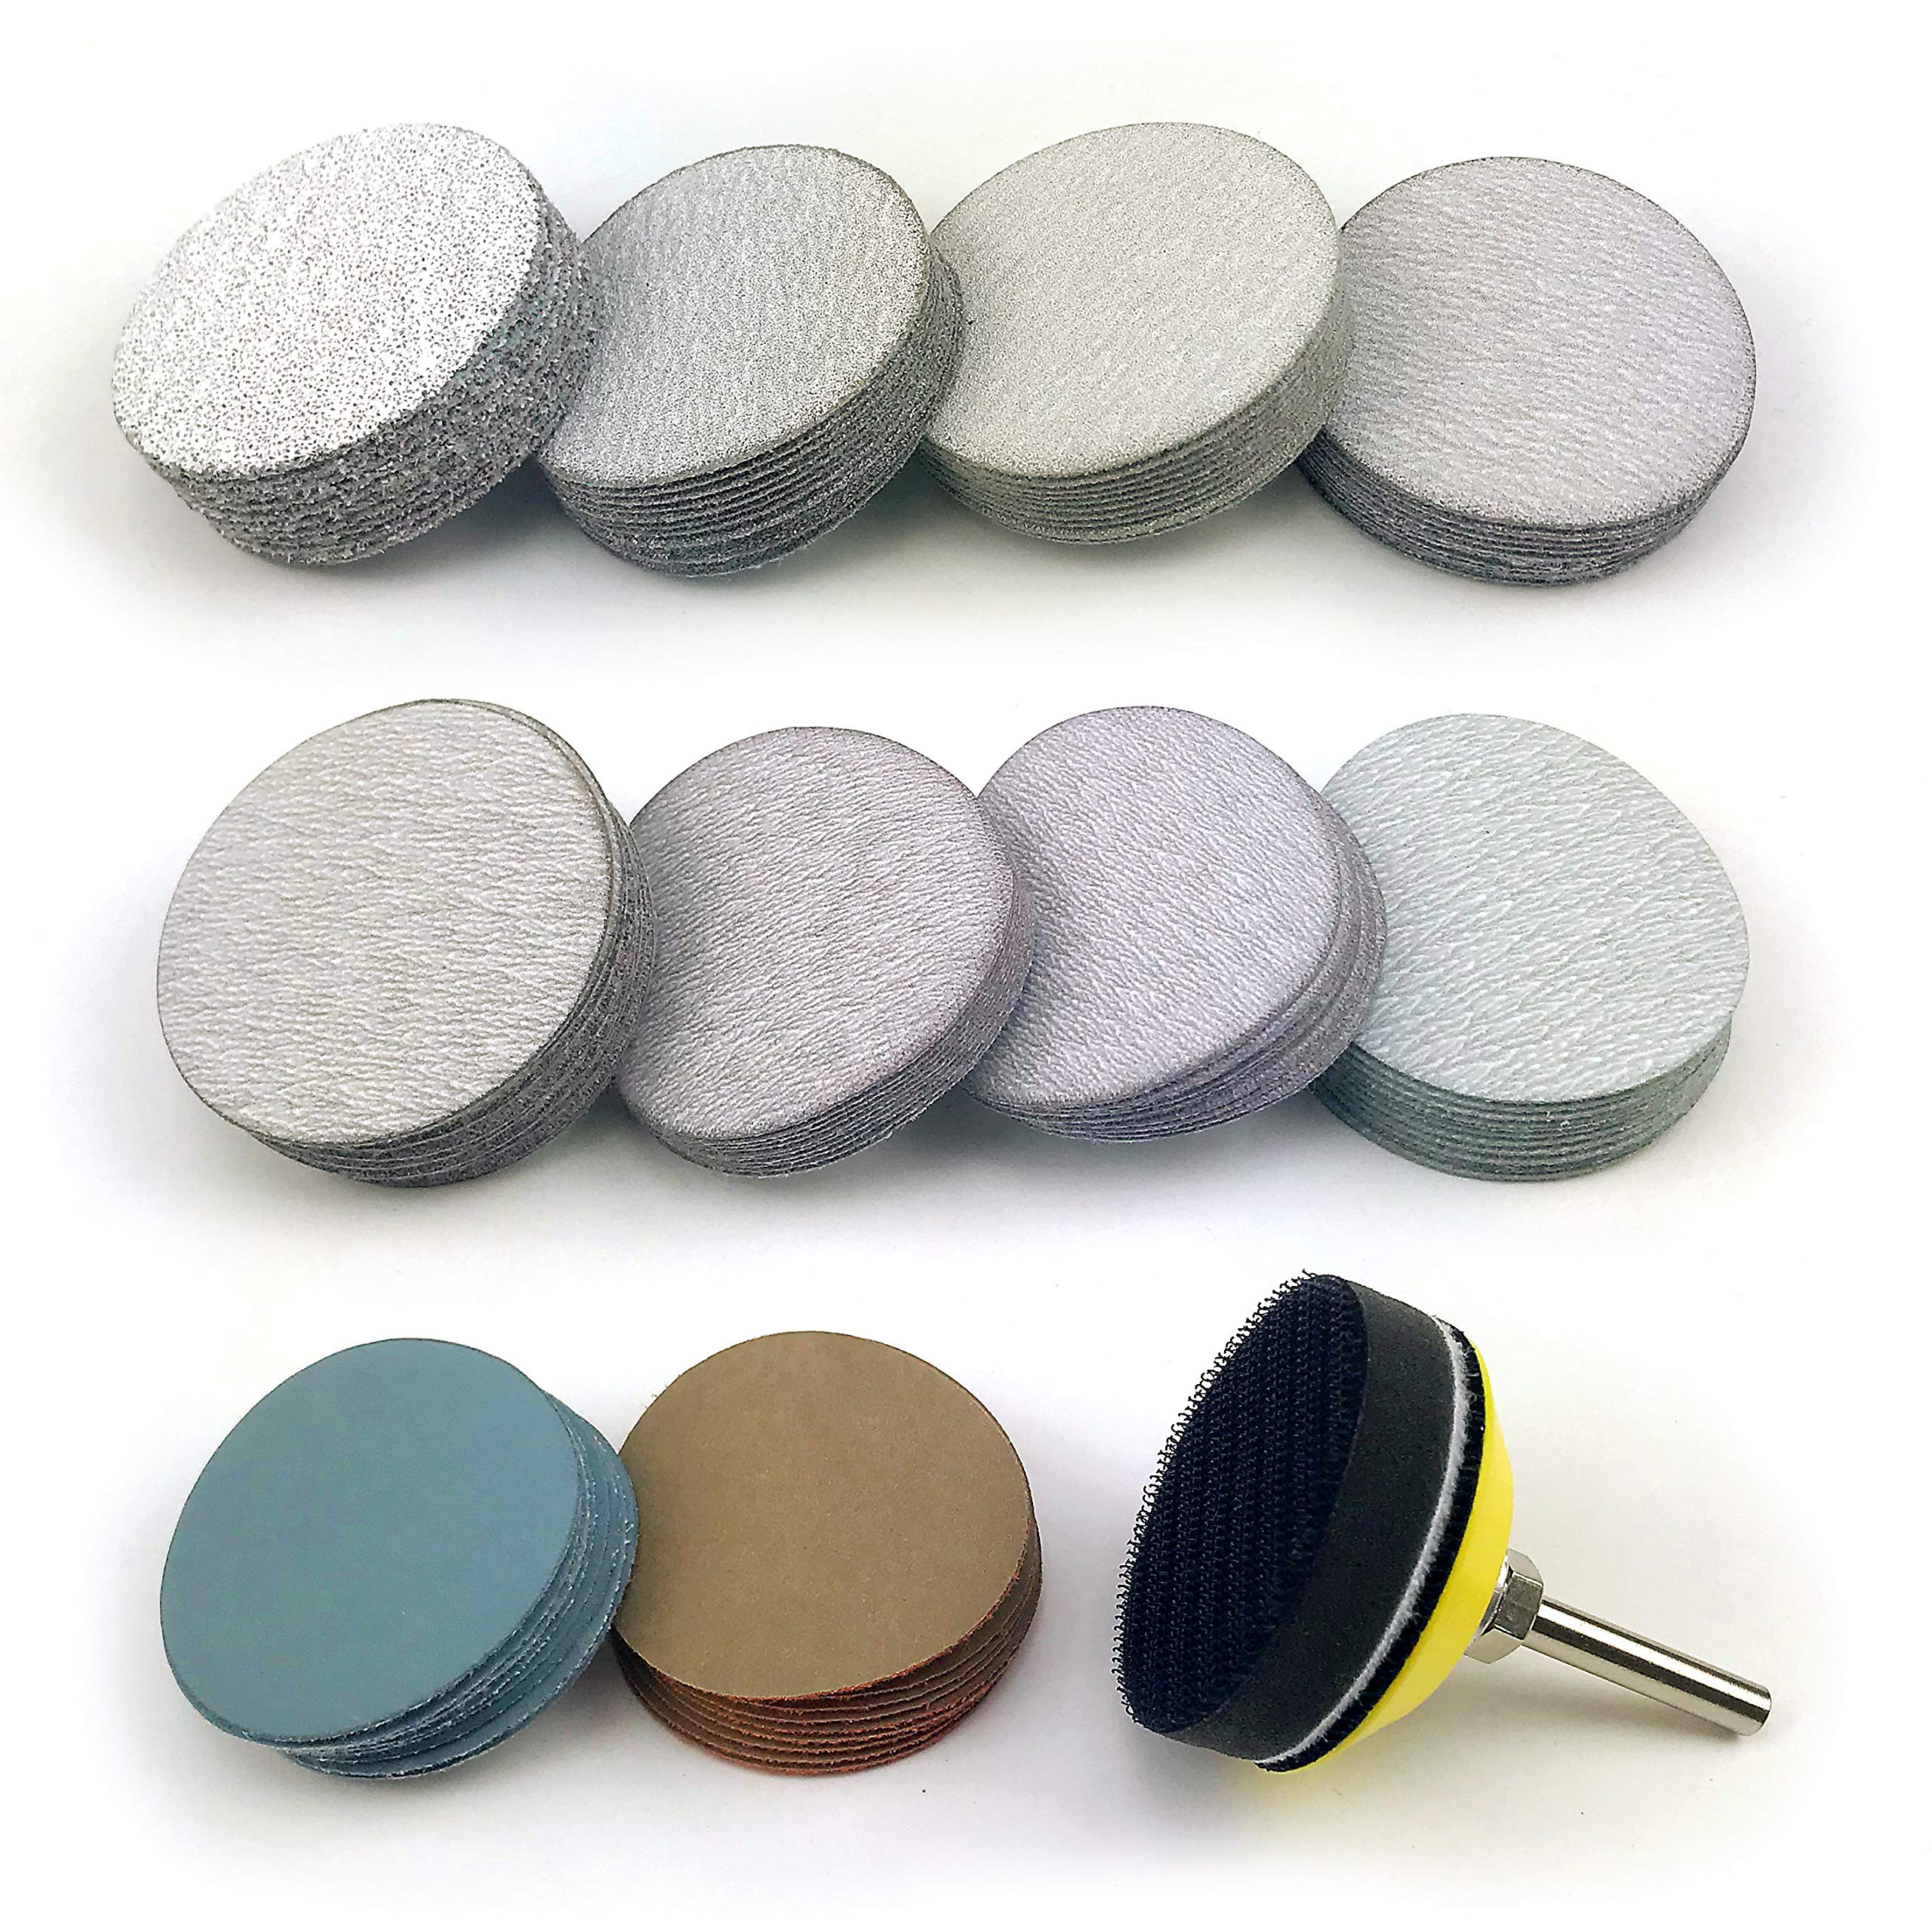 2 Inch Assorted Grits White Dry & Waterproof(wet/dry) Hook & Loop Sanding Discs with 1/4 inch Shank Sanding Pad + Soft Foam-Backed Interface Buffer Pad, Total 100 Discs